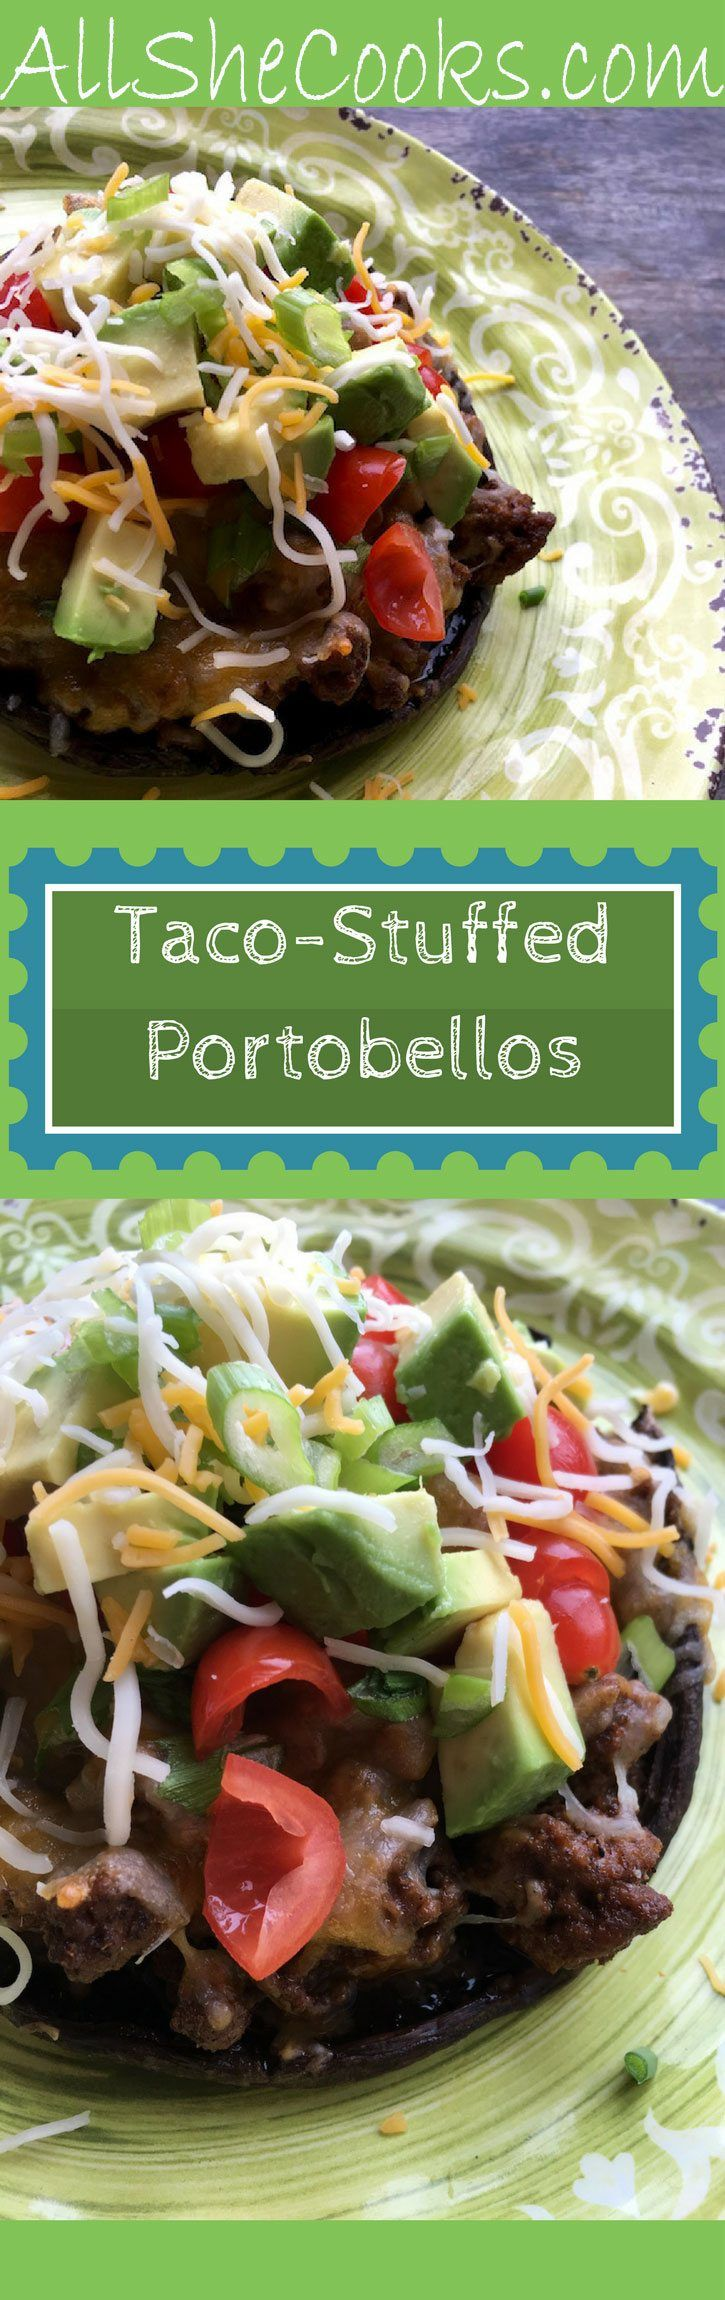 Enjoy Taco Stuffed Portobello Caps for a healthy meal. Eating healthy with a variety of low-fat recipes is a good way to stay on track with you health goals.